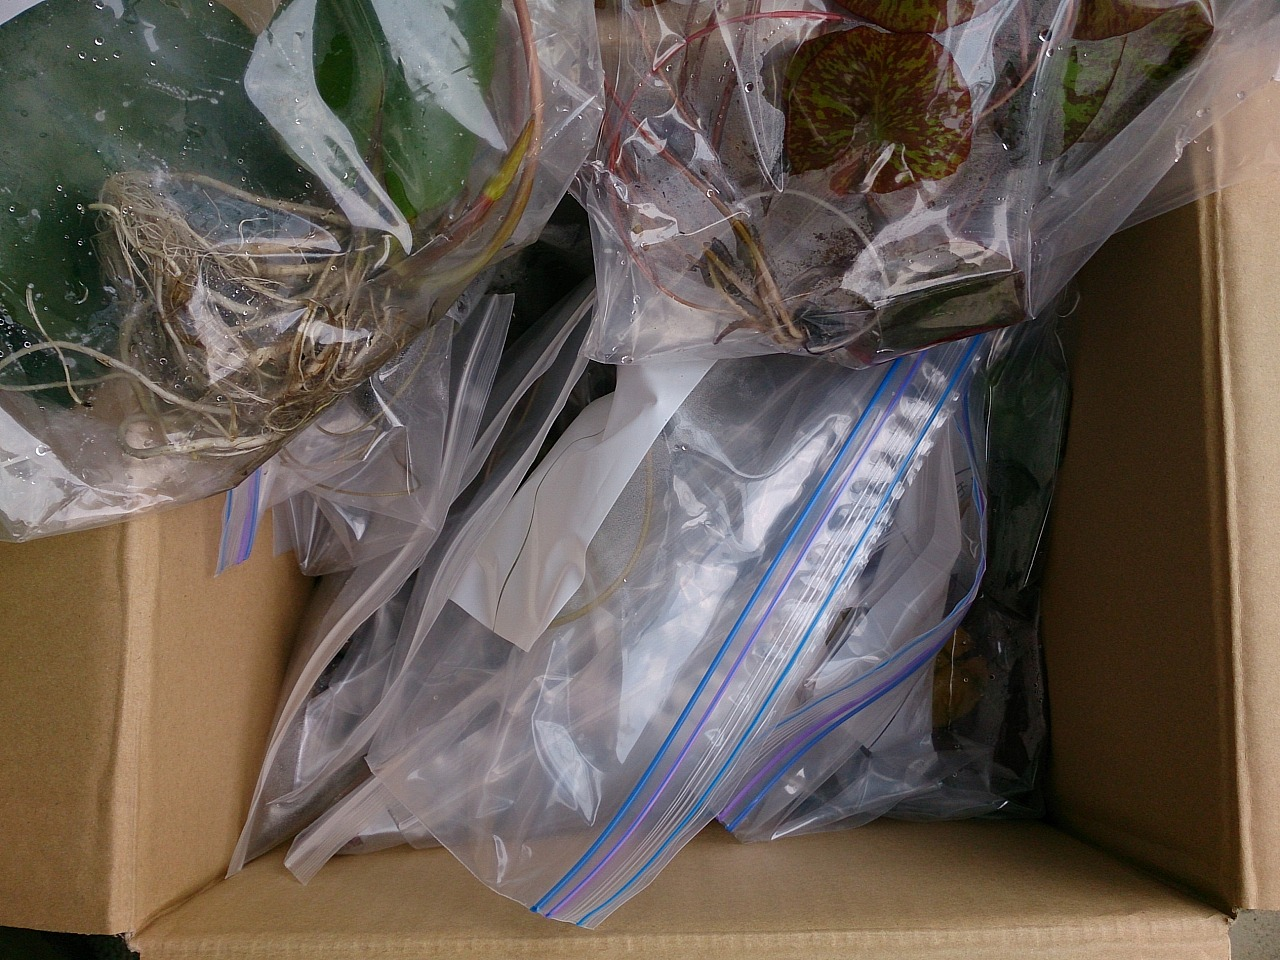 Delivery_20140615-02.jpg